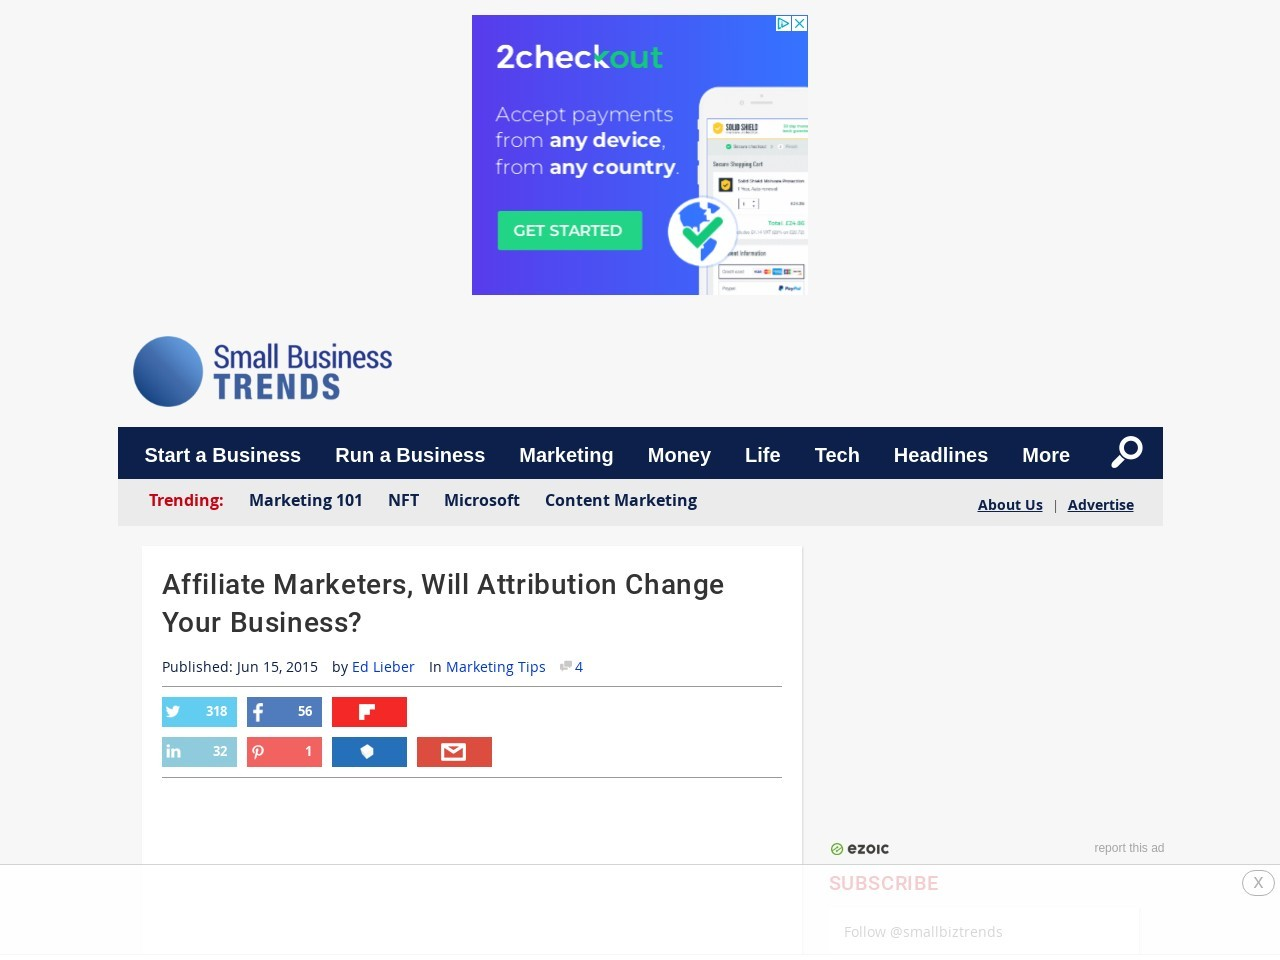 Affiliate Marketers, Will Attribution Modeling Change Your Biz?